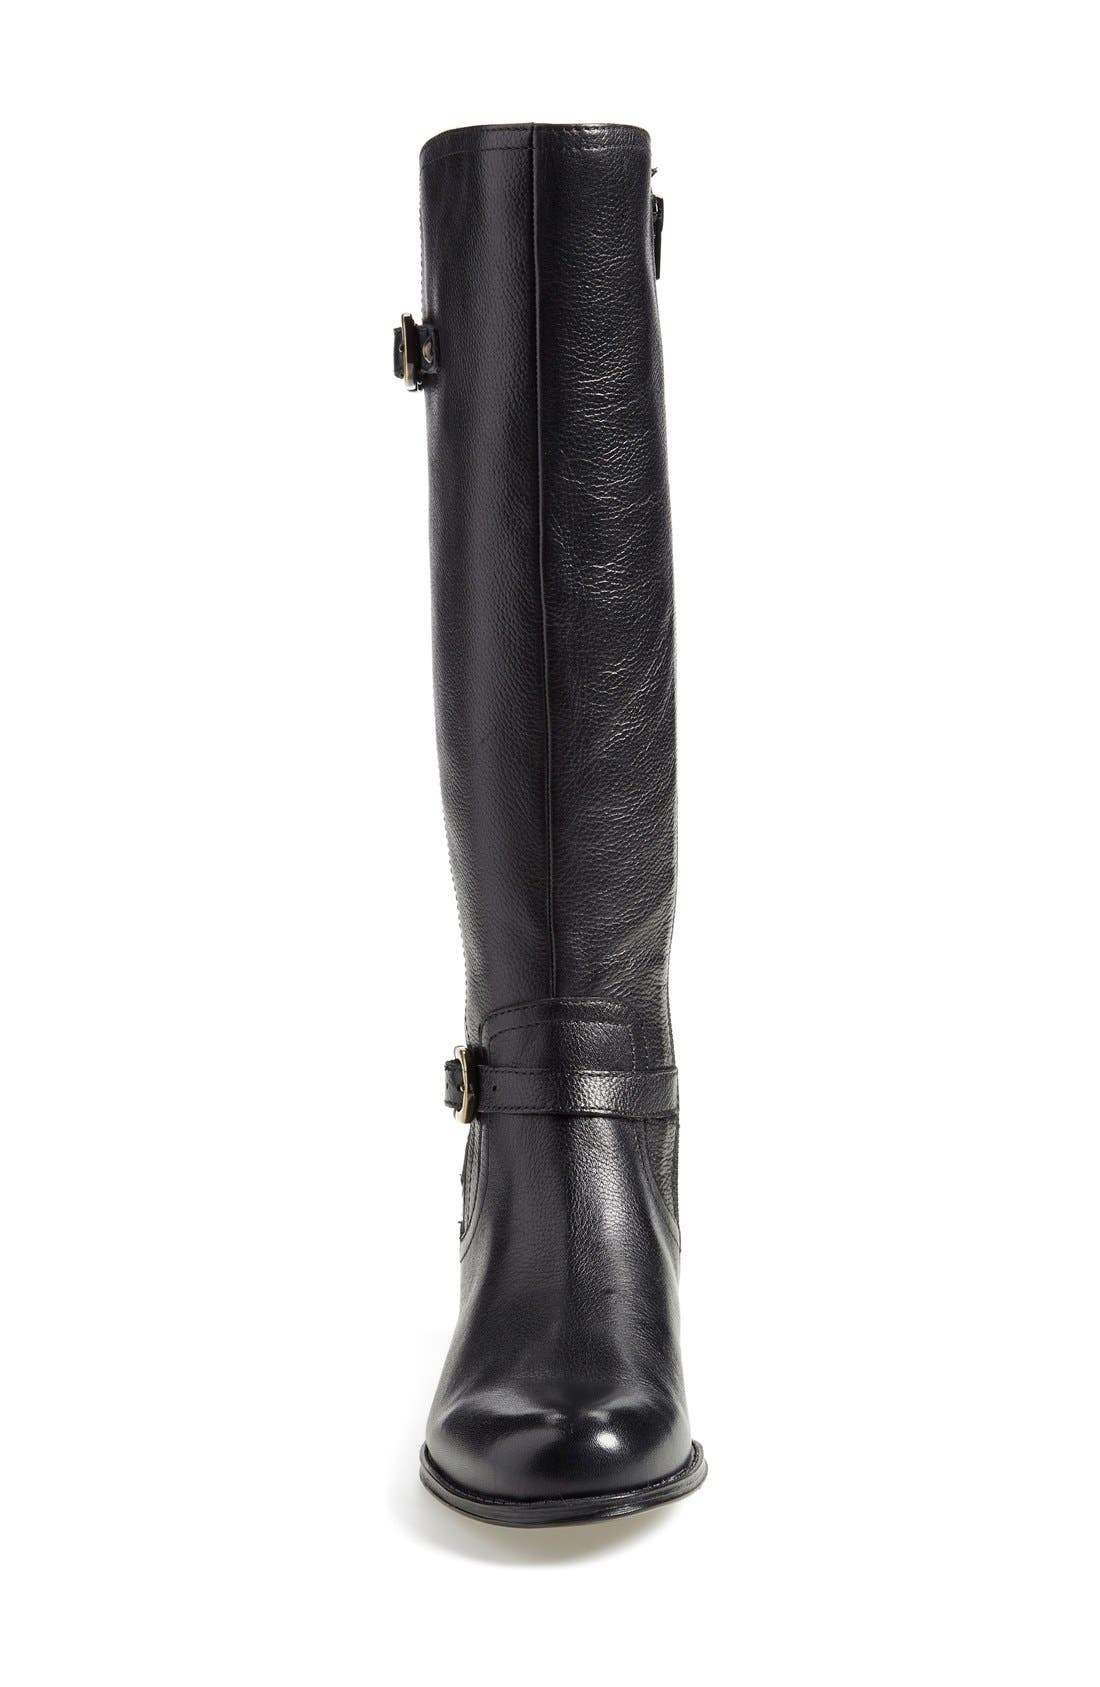 Alternate Image 3  - Naturalizer 'Jennings' Knee High Boot (Women) (Wide Calf)